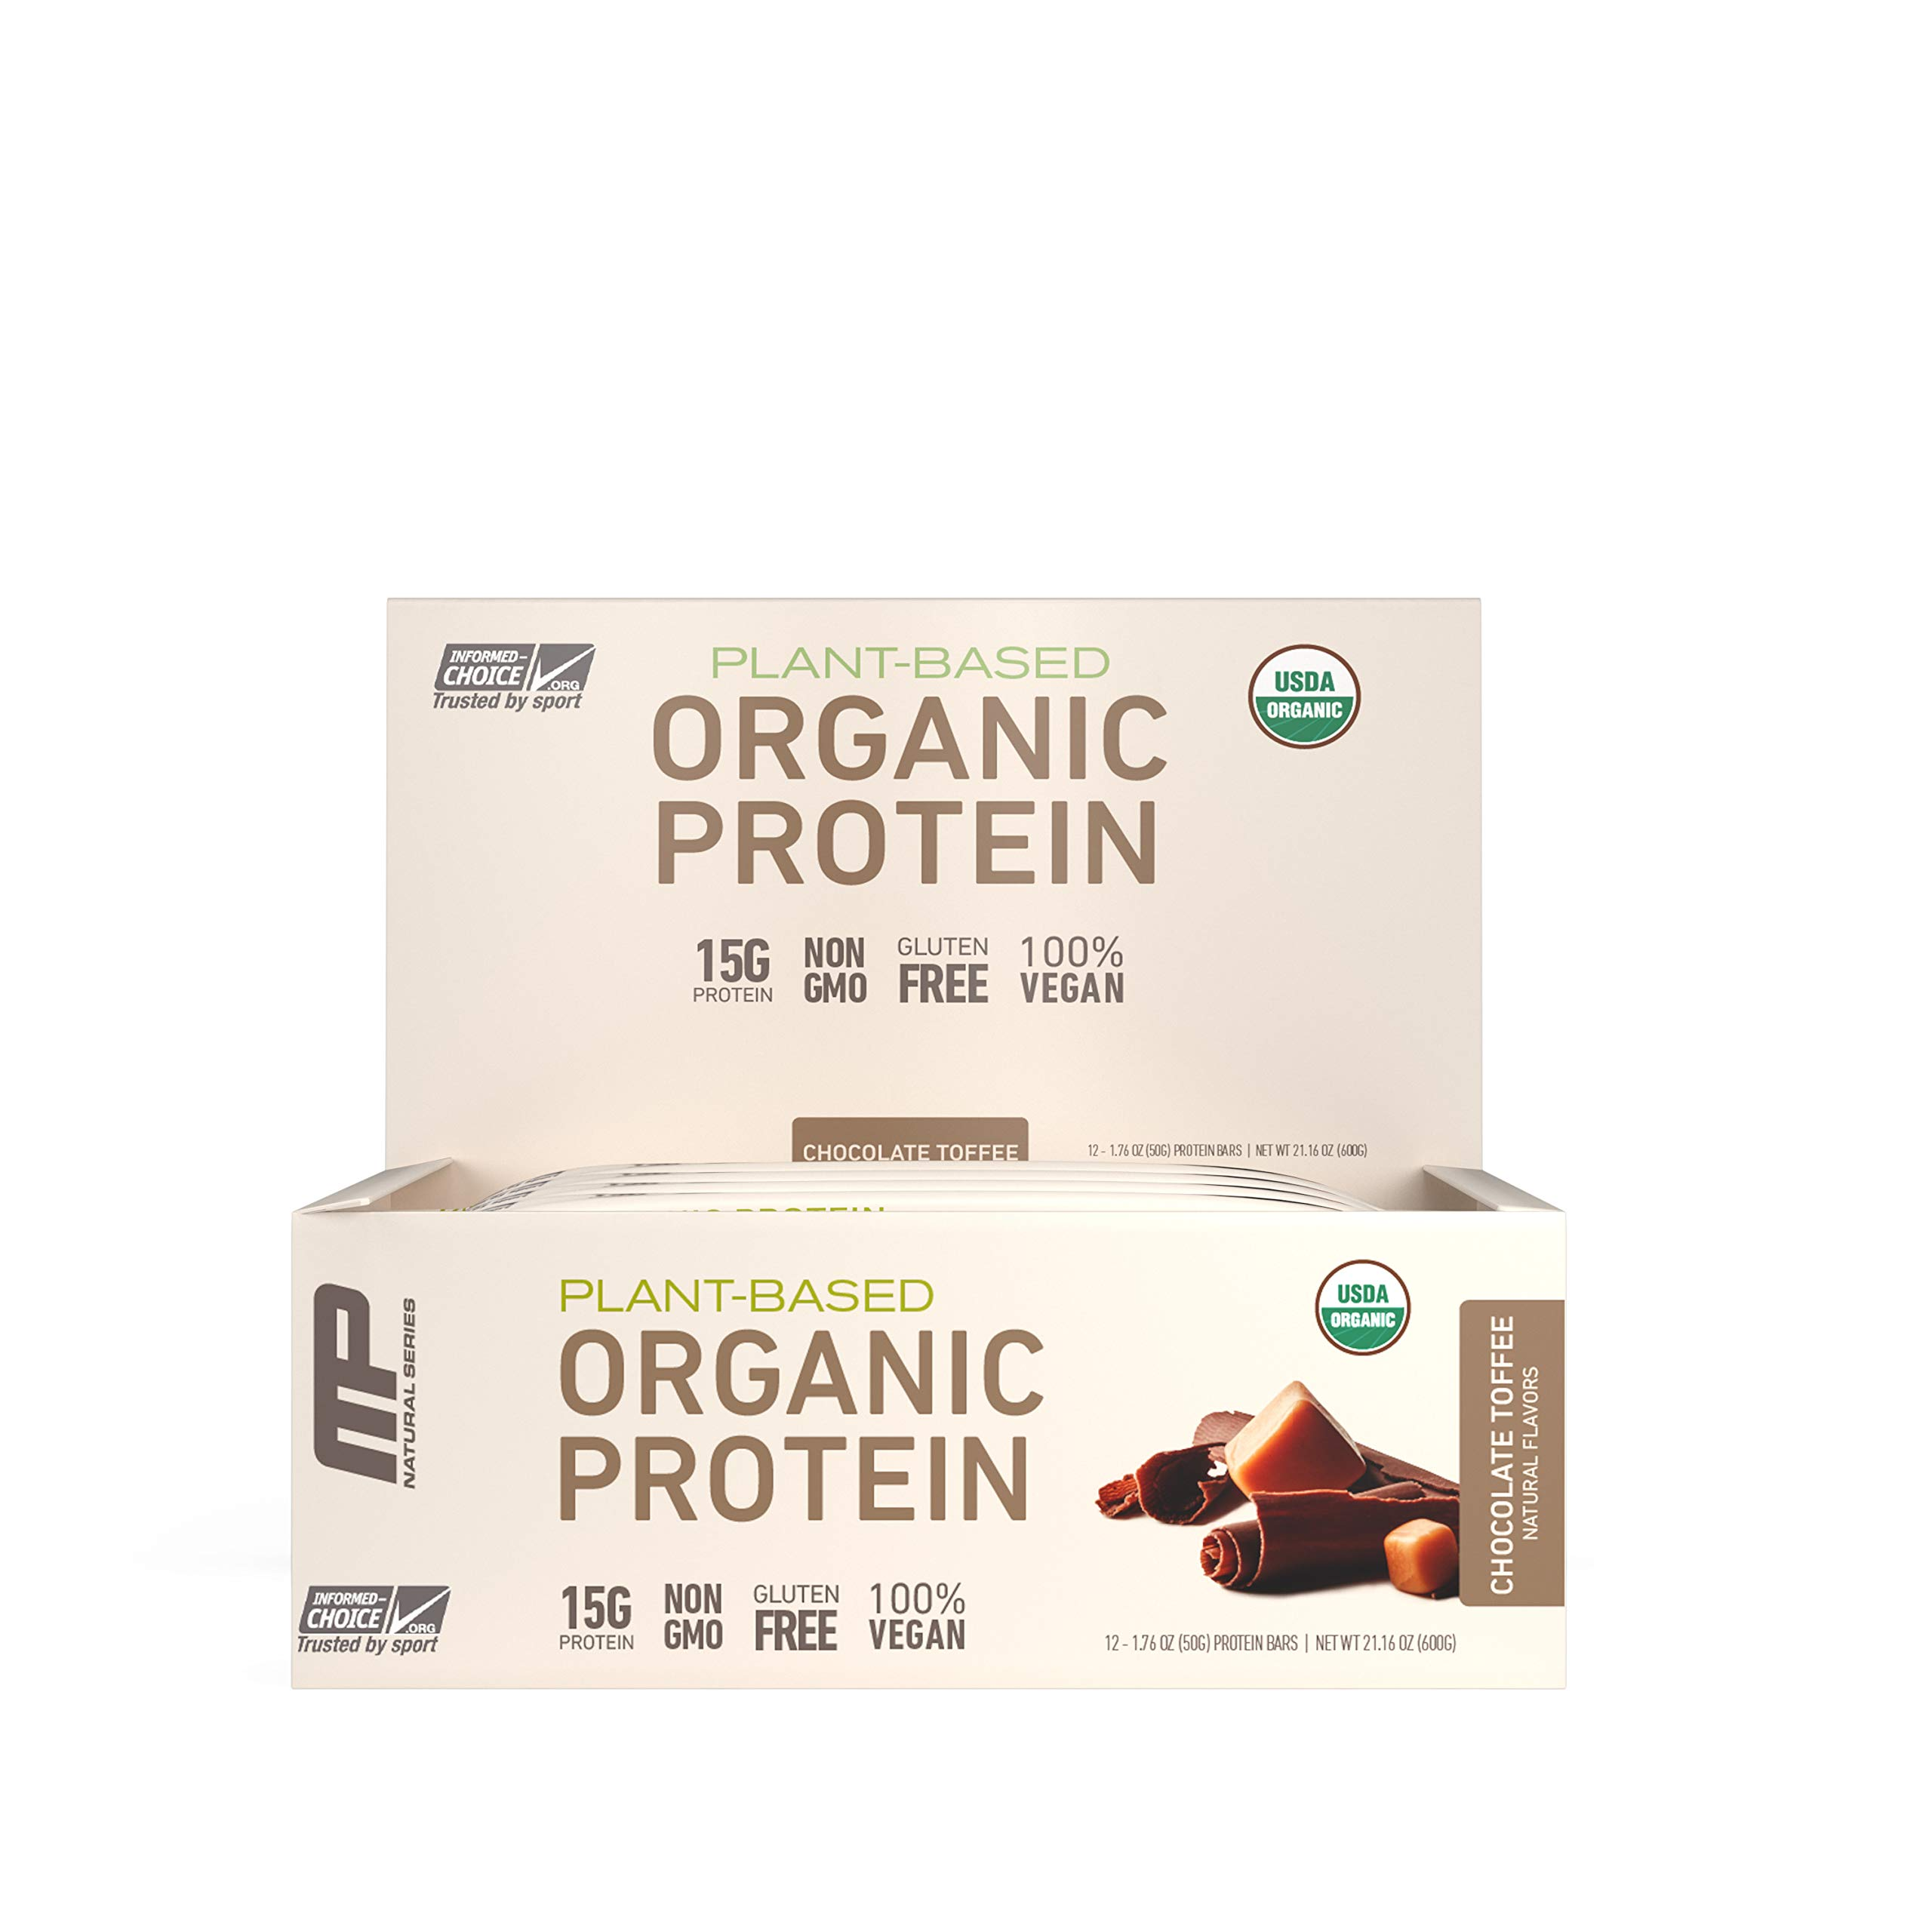 MP Organic Protein Bar, Certified USDA Organic, 15g Plant Based Protein, No Artificial Ingredients, Gluten Free, Non GMO, Chocolate Toffee, 12 Bars by Muscle Pharm